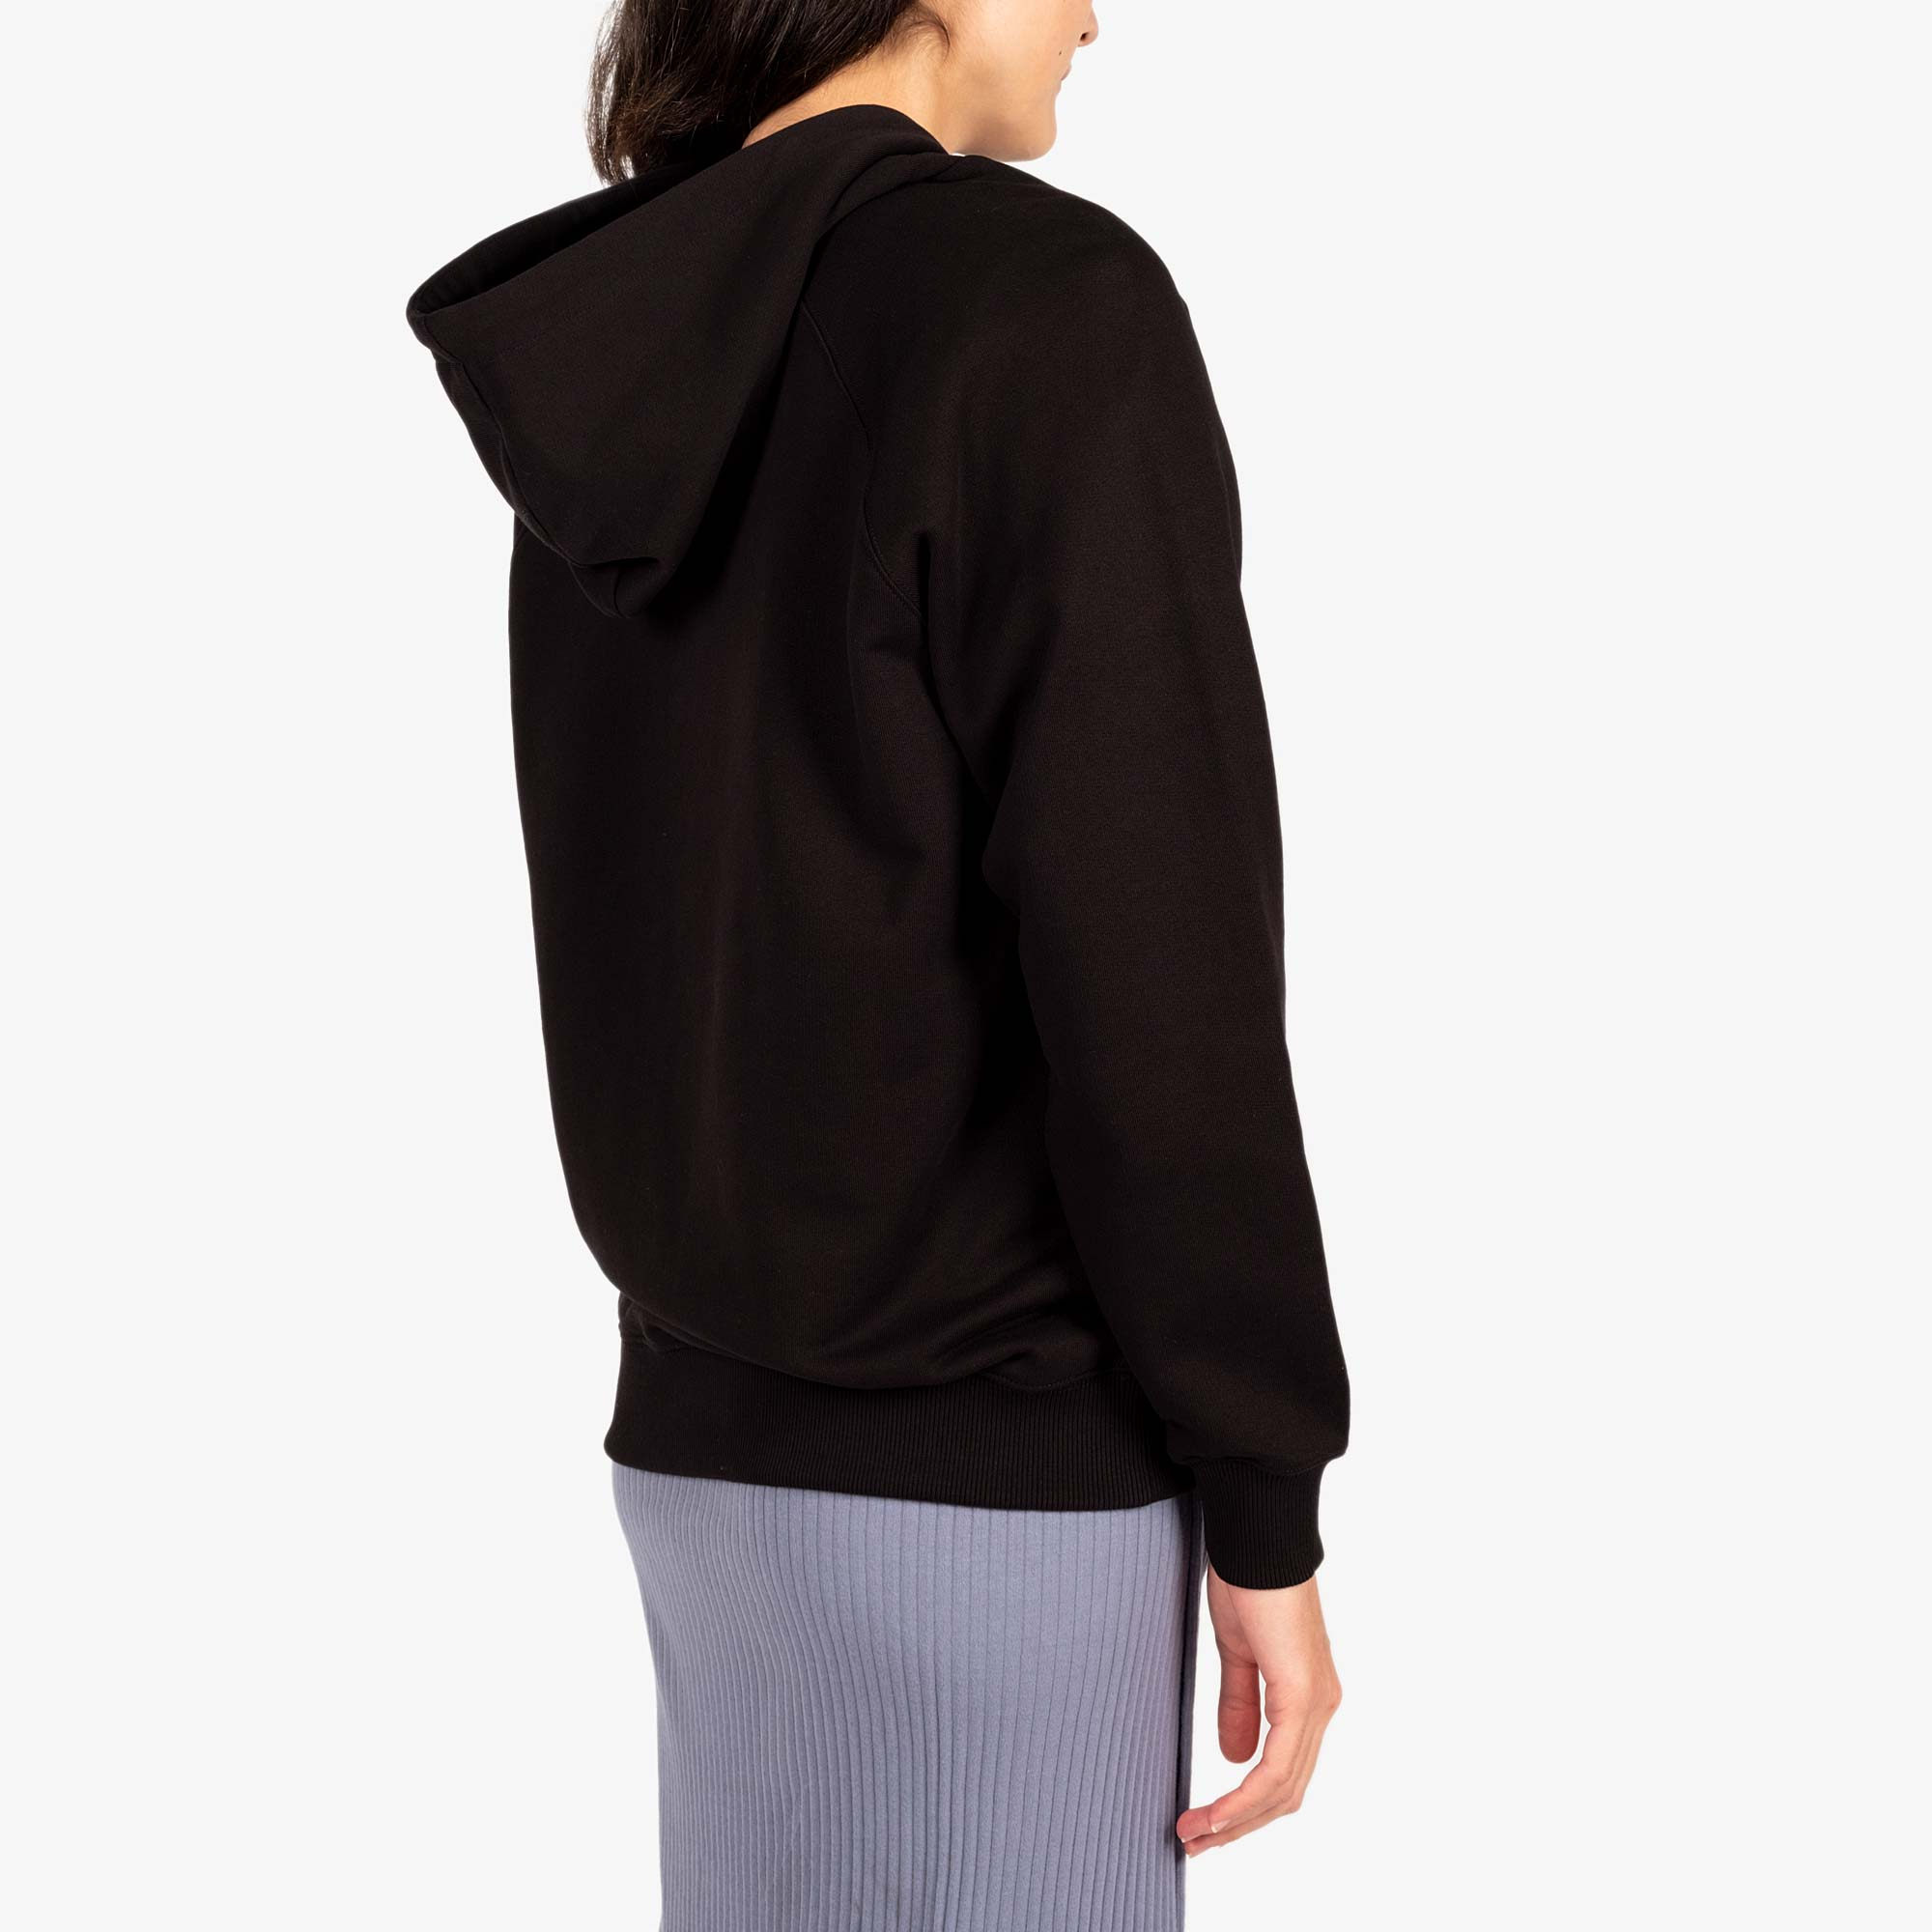 Kenzo Womens Tiger Hooded Sweatshirt - Black 6